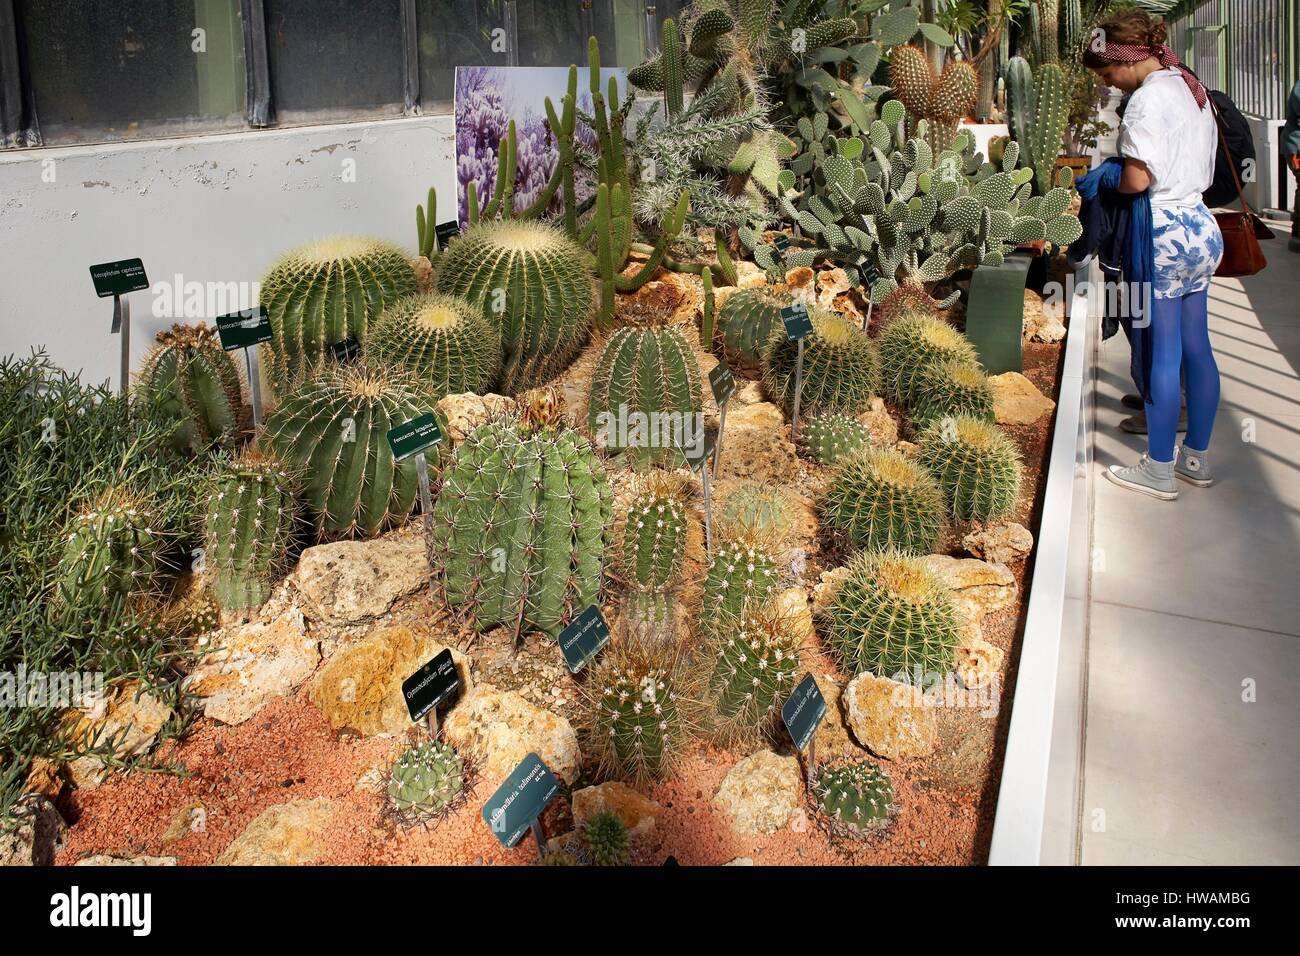 France, Paris, National Museum of Natural History, Large greenhouses of the Jardin des Plantes, Greenhouse deserts - Stock Image